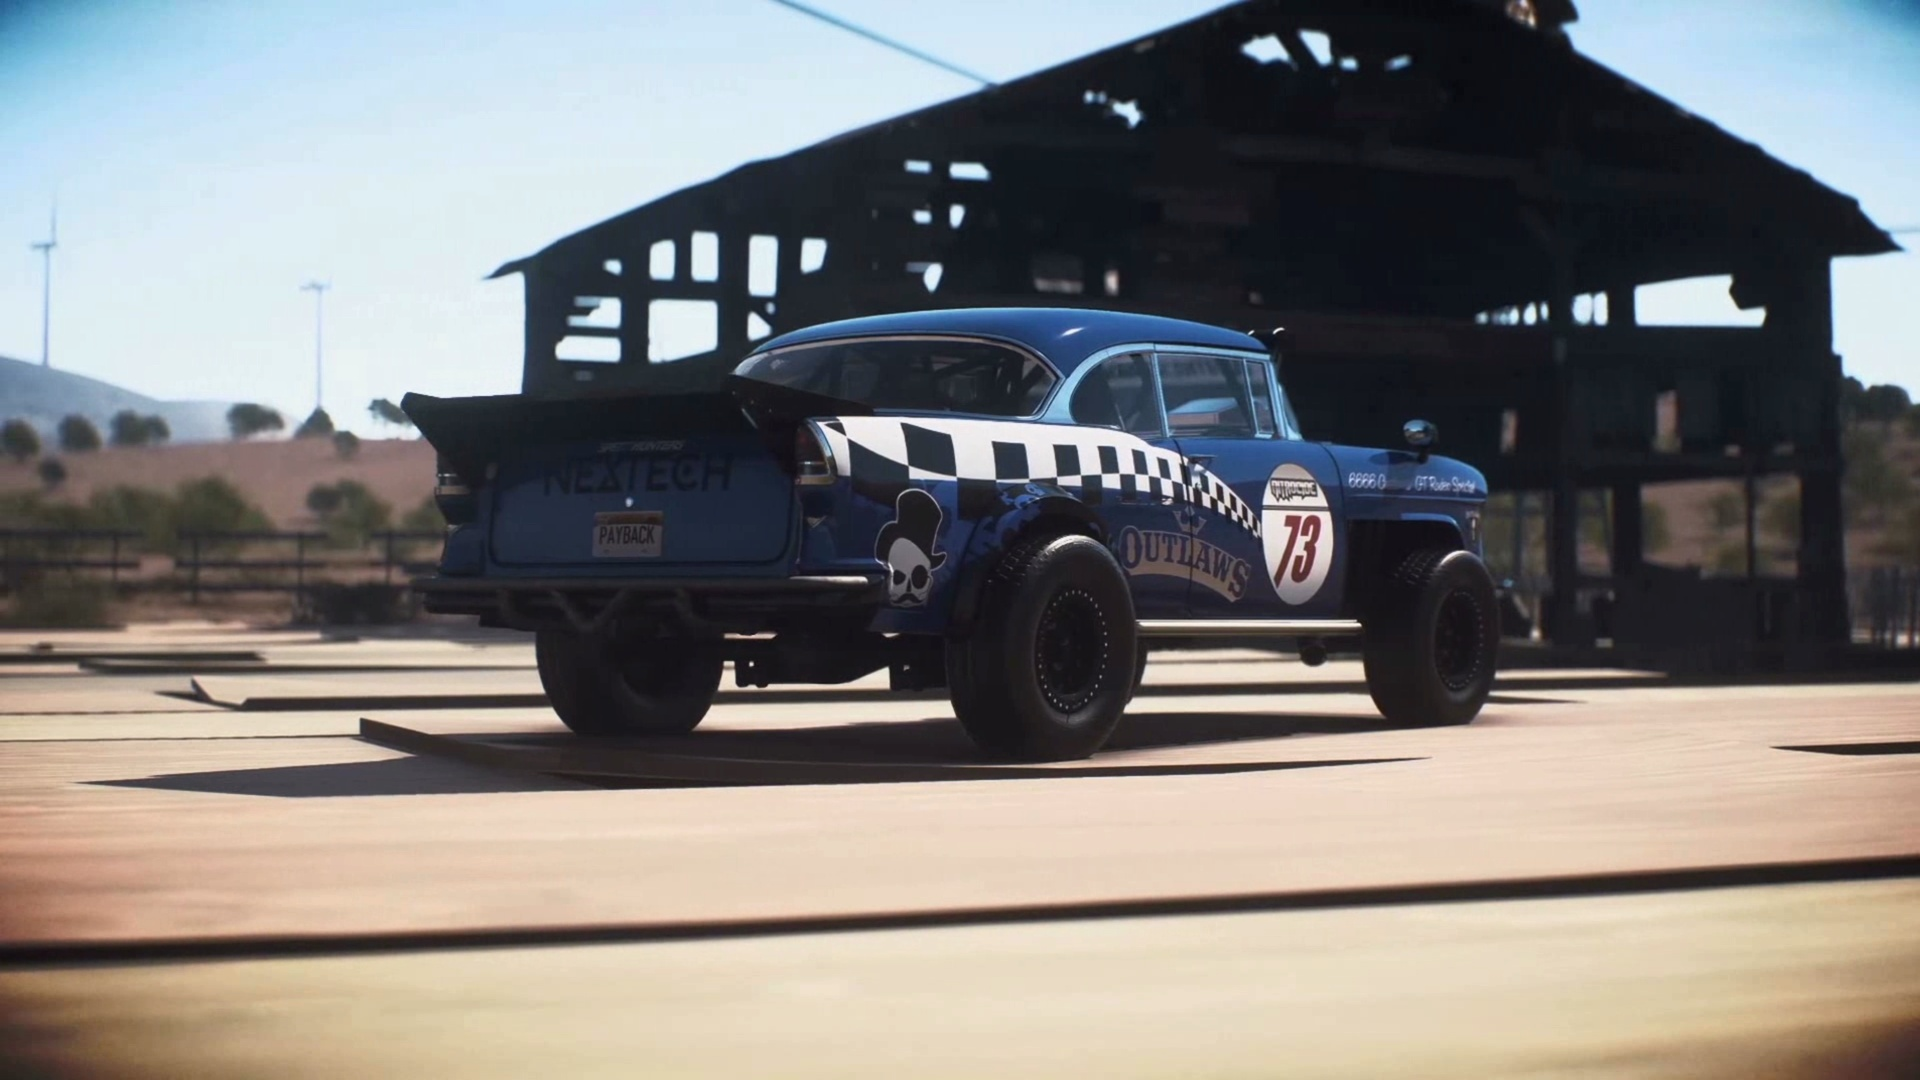 Need for Speed Payback Chevrolet Bel Air 1955 Derelict Car Parts